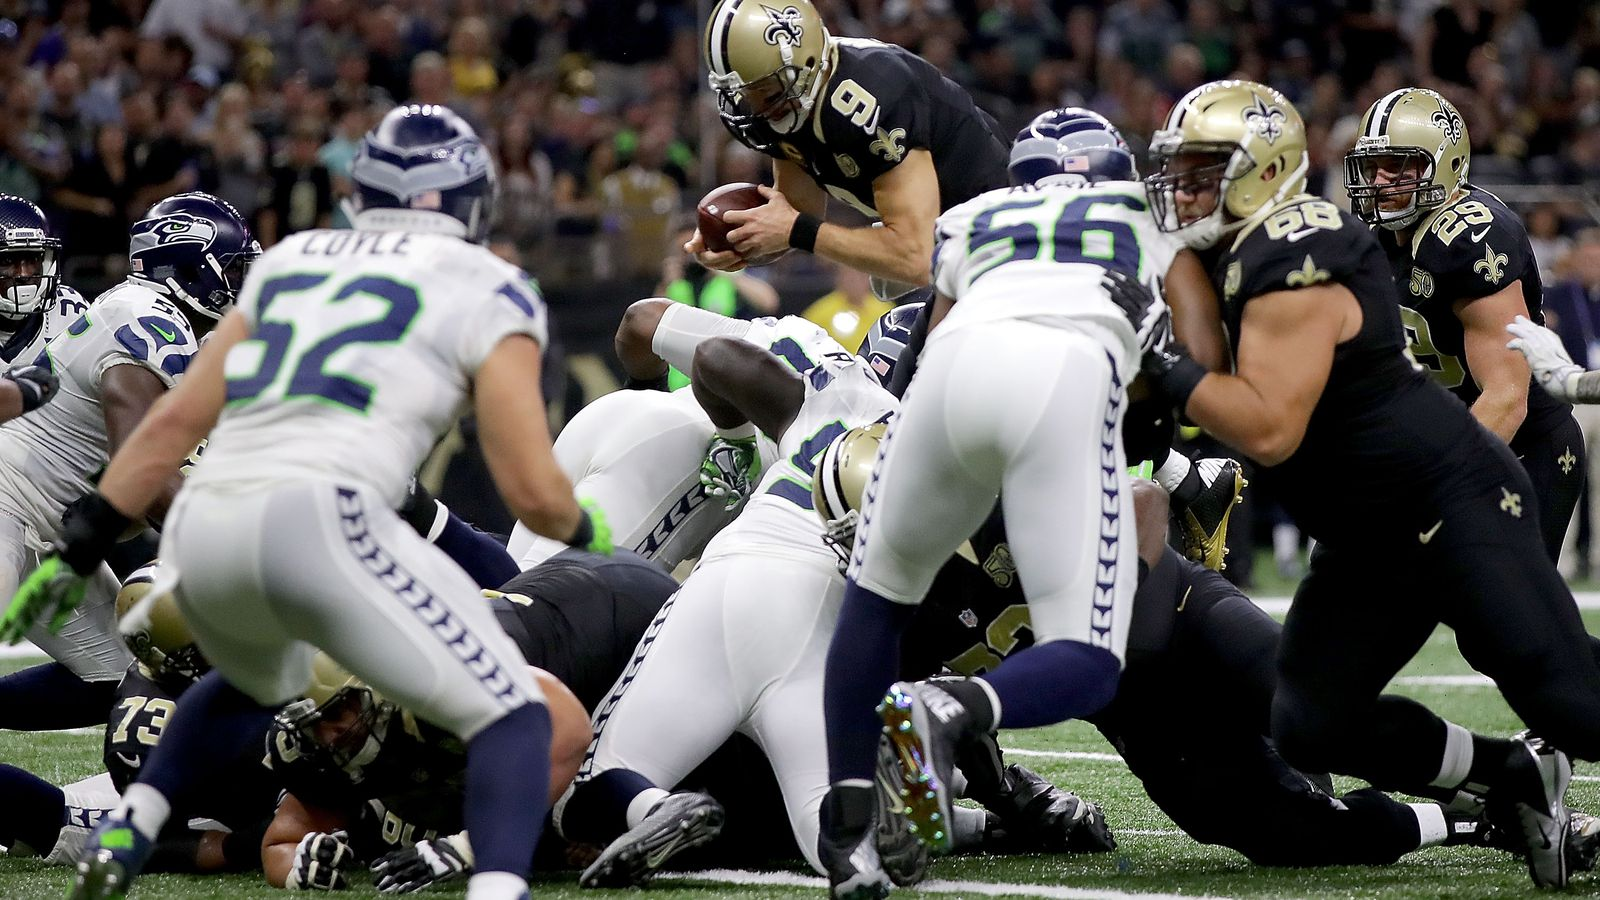 25 30 Seattle: Seattle Seahawks-New Orleans Saints Final Score: Time Runs